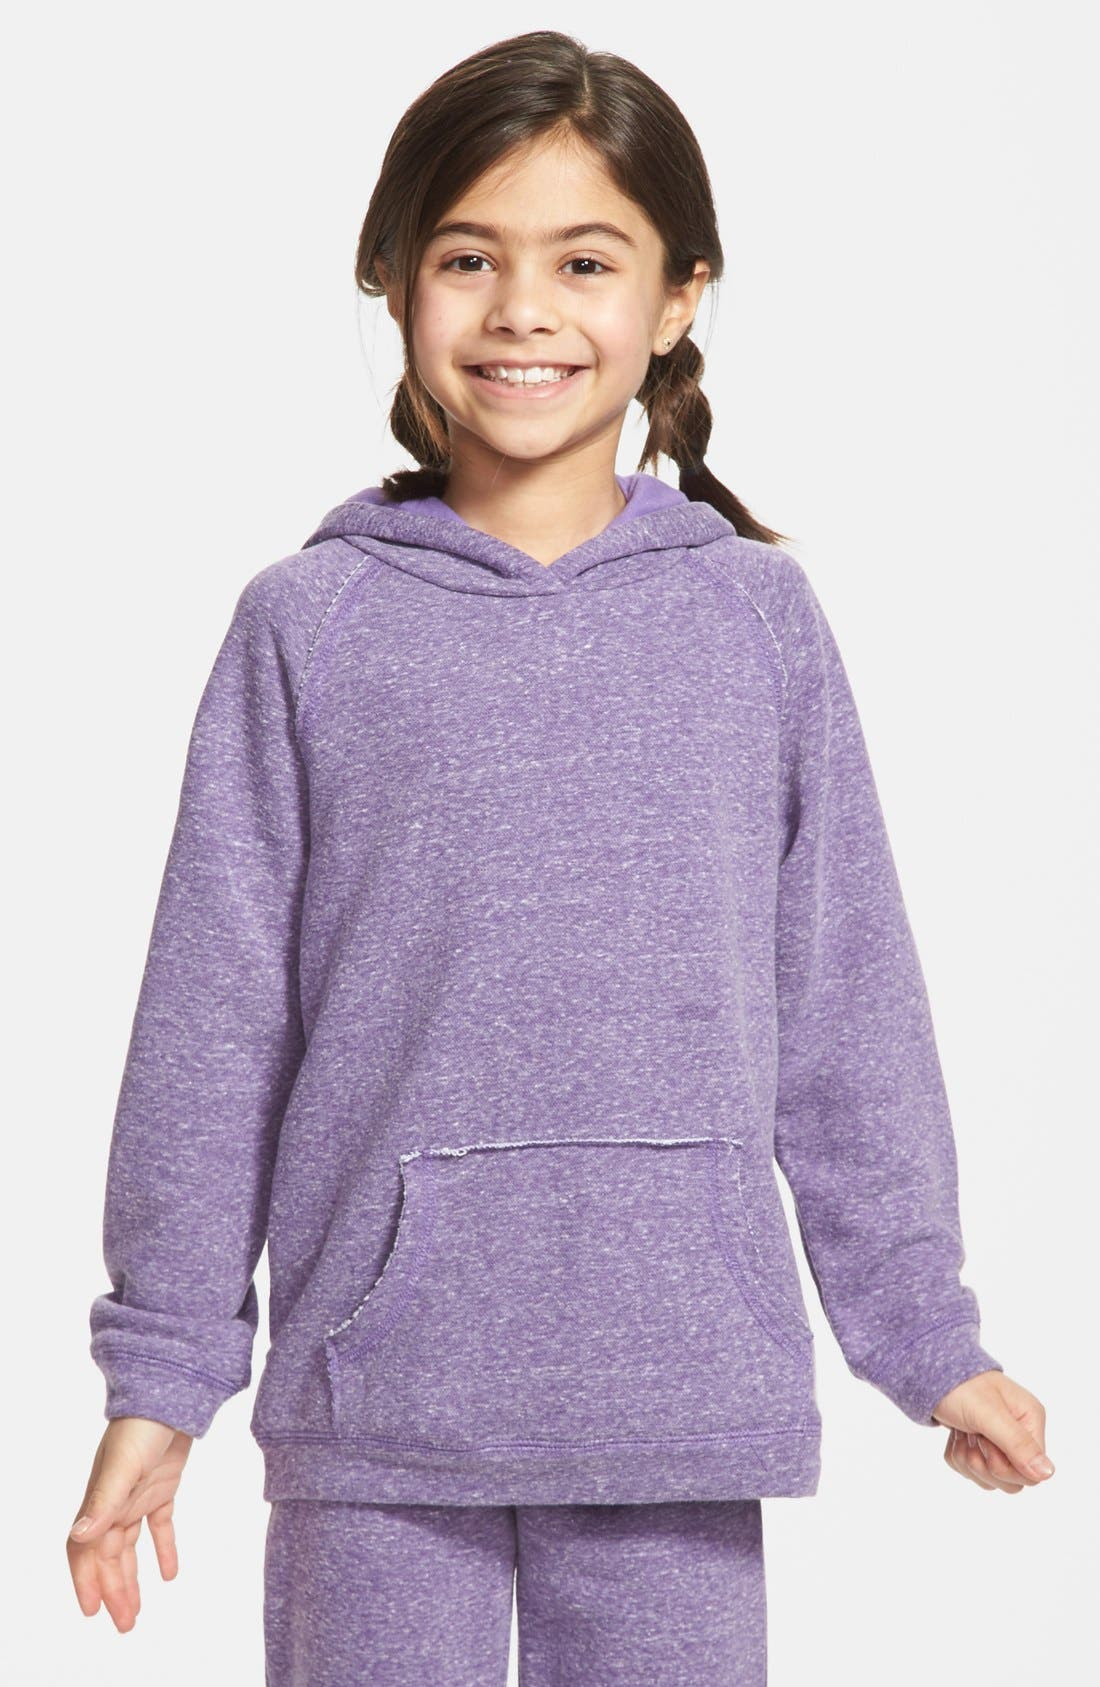 Main Image - Peek 'Logan' Pullover Fleece Hoodie (Toddler Girls, Little Girls & Big Girls)